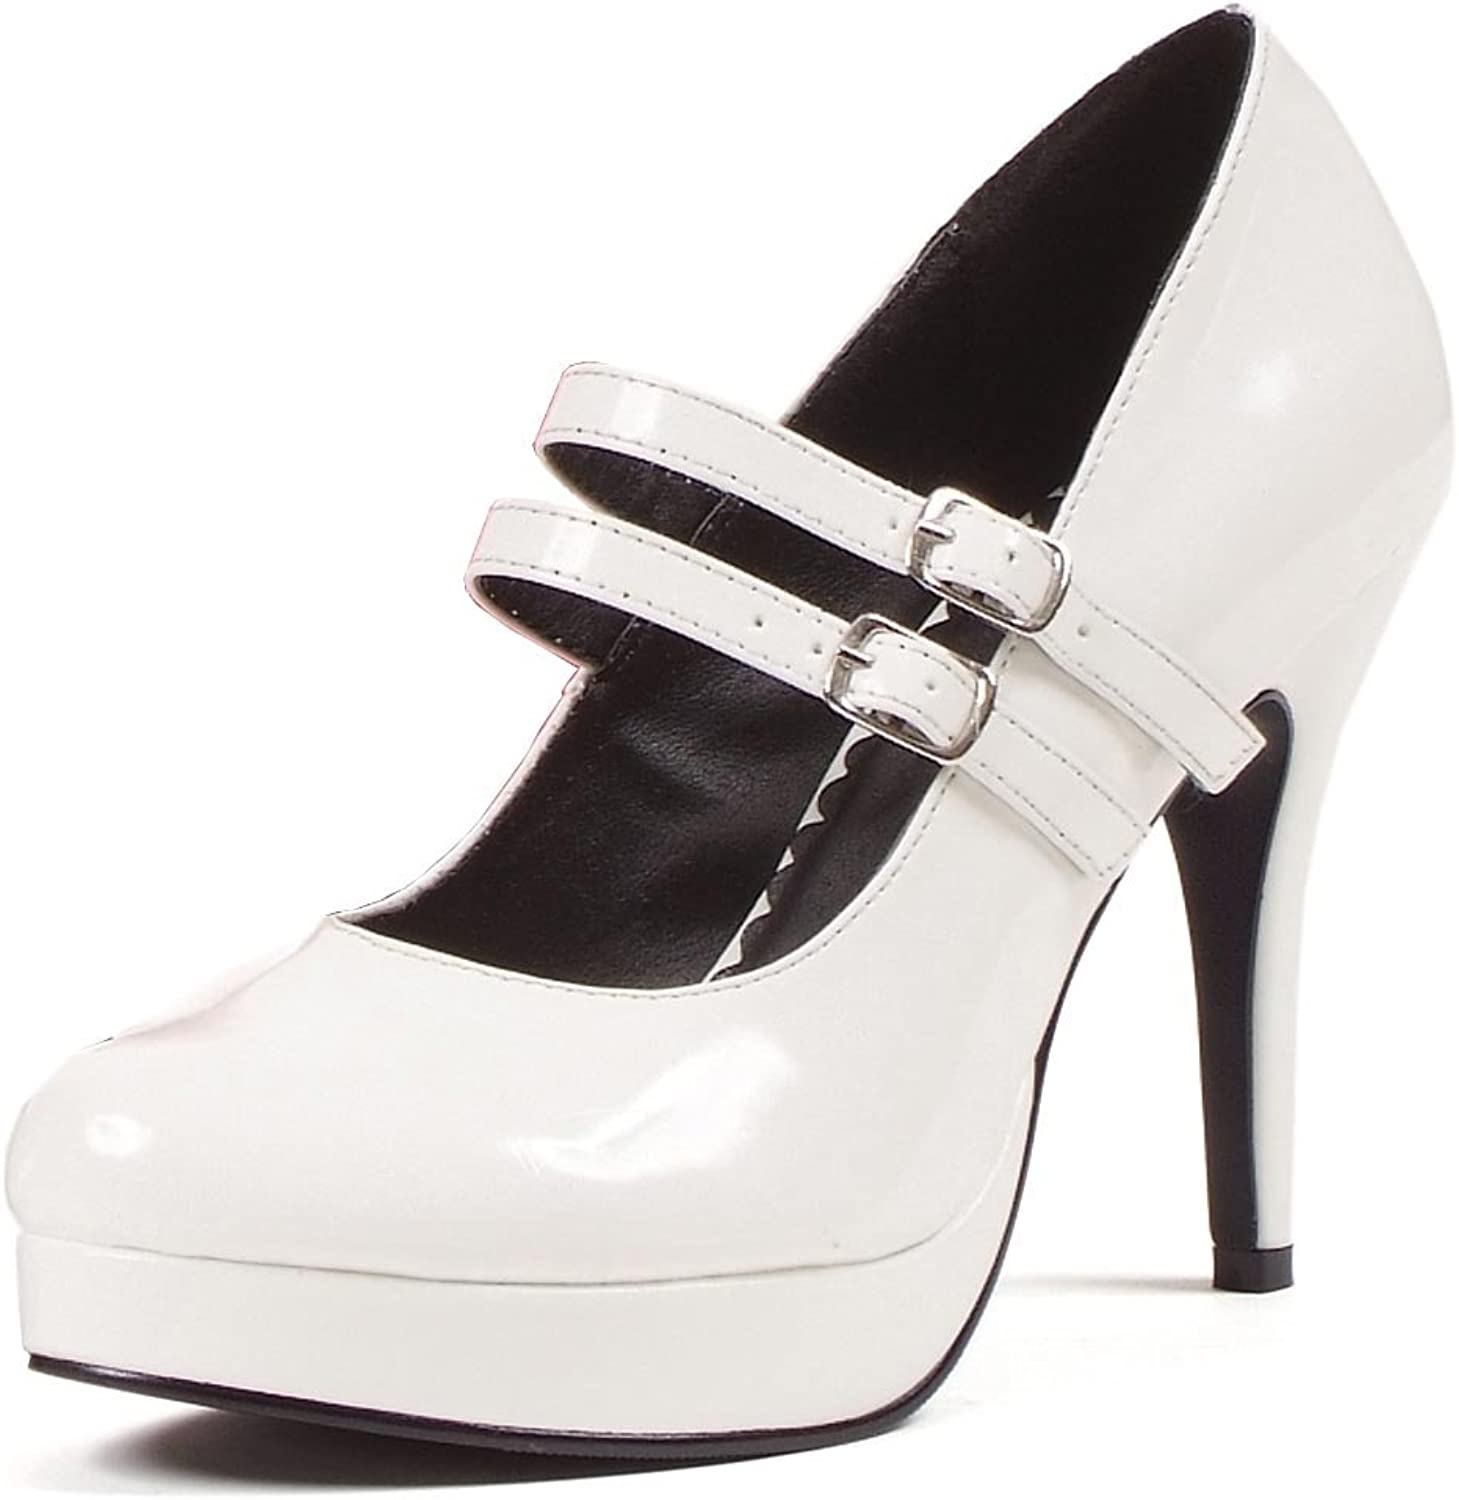 Size US 4-13 Ladies Block Heels Buckle Strap Pumps OL Shoes Round Toe Mary Janes